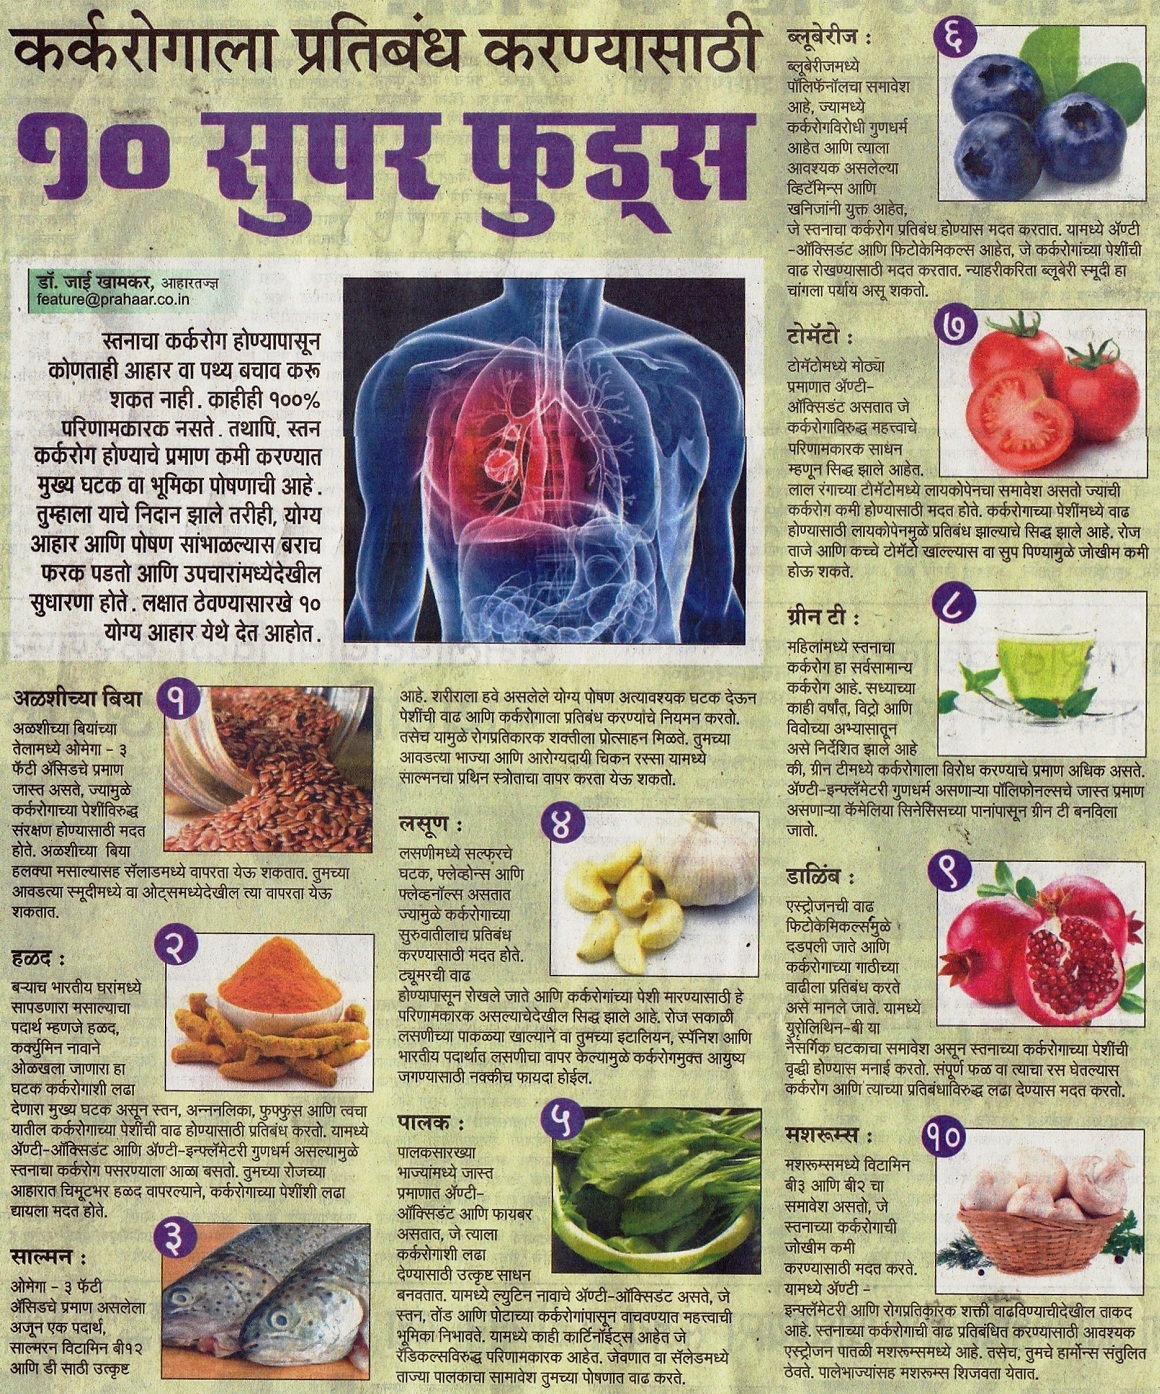 News - 10 Super Foods to Avoid Breast Cancer